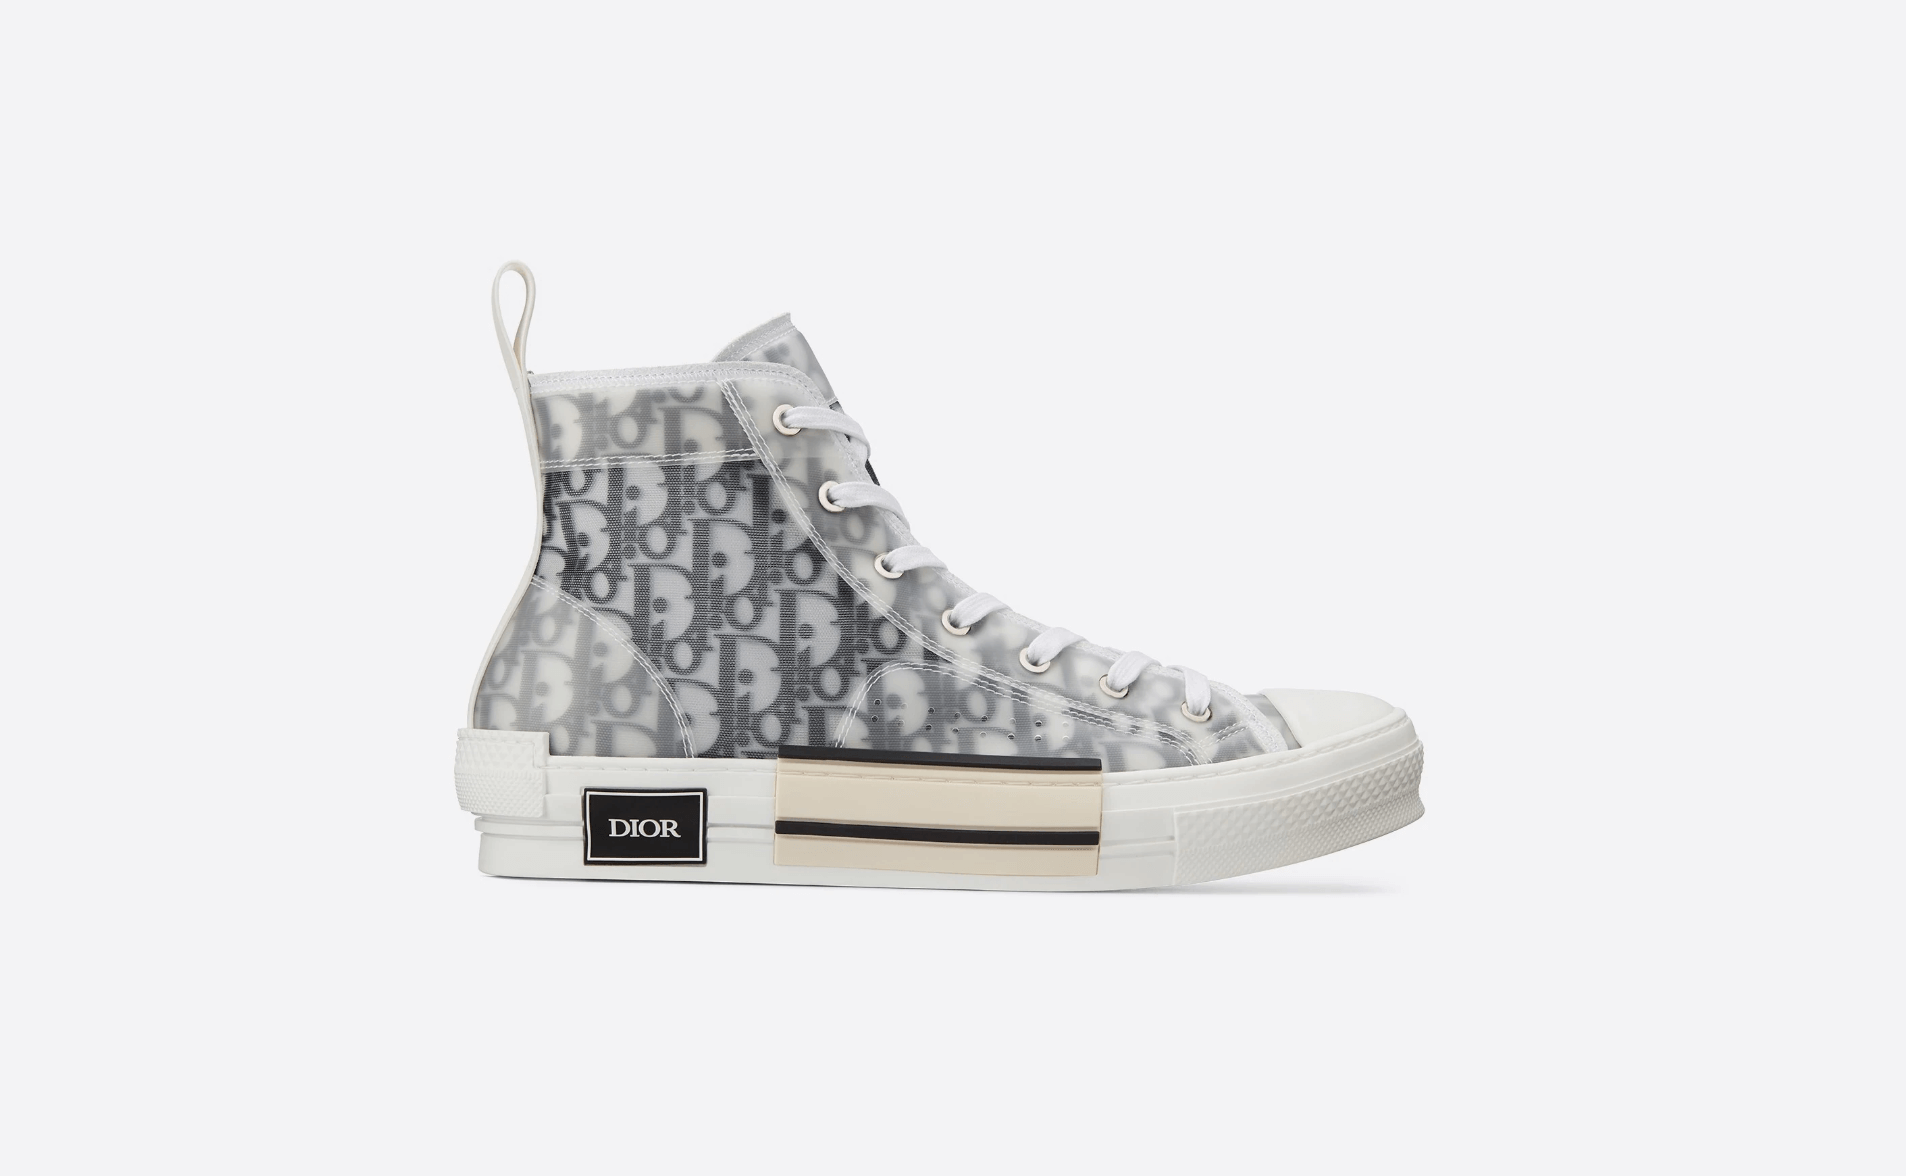 Dior high top sneakers in Dior oblique